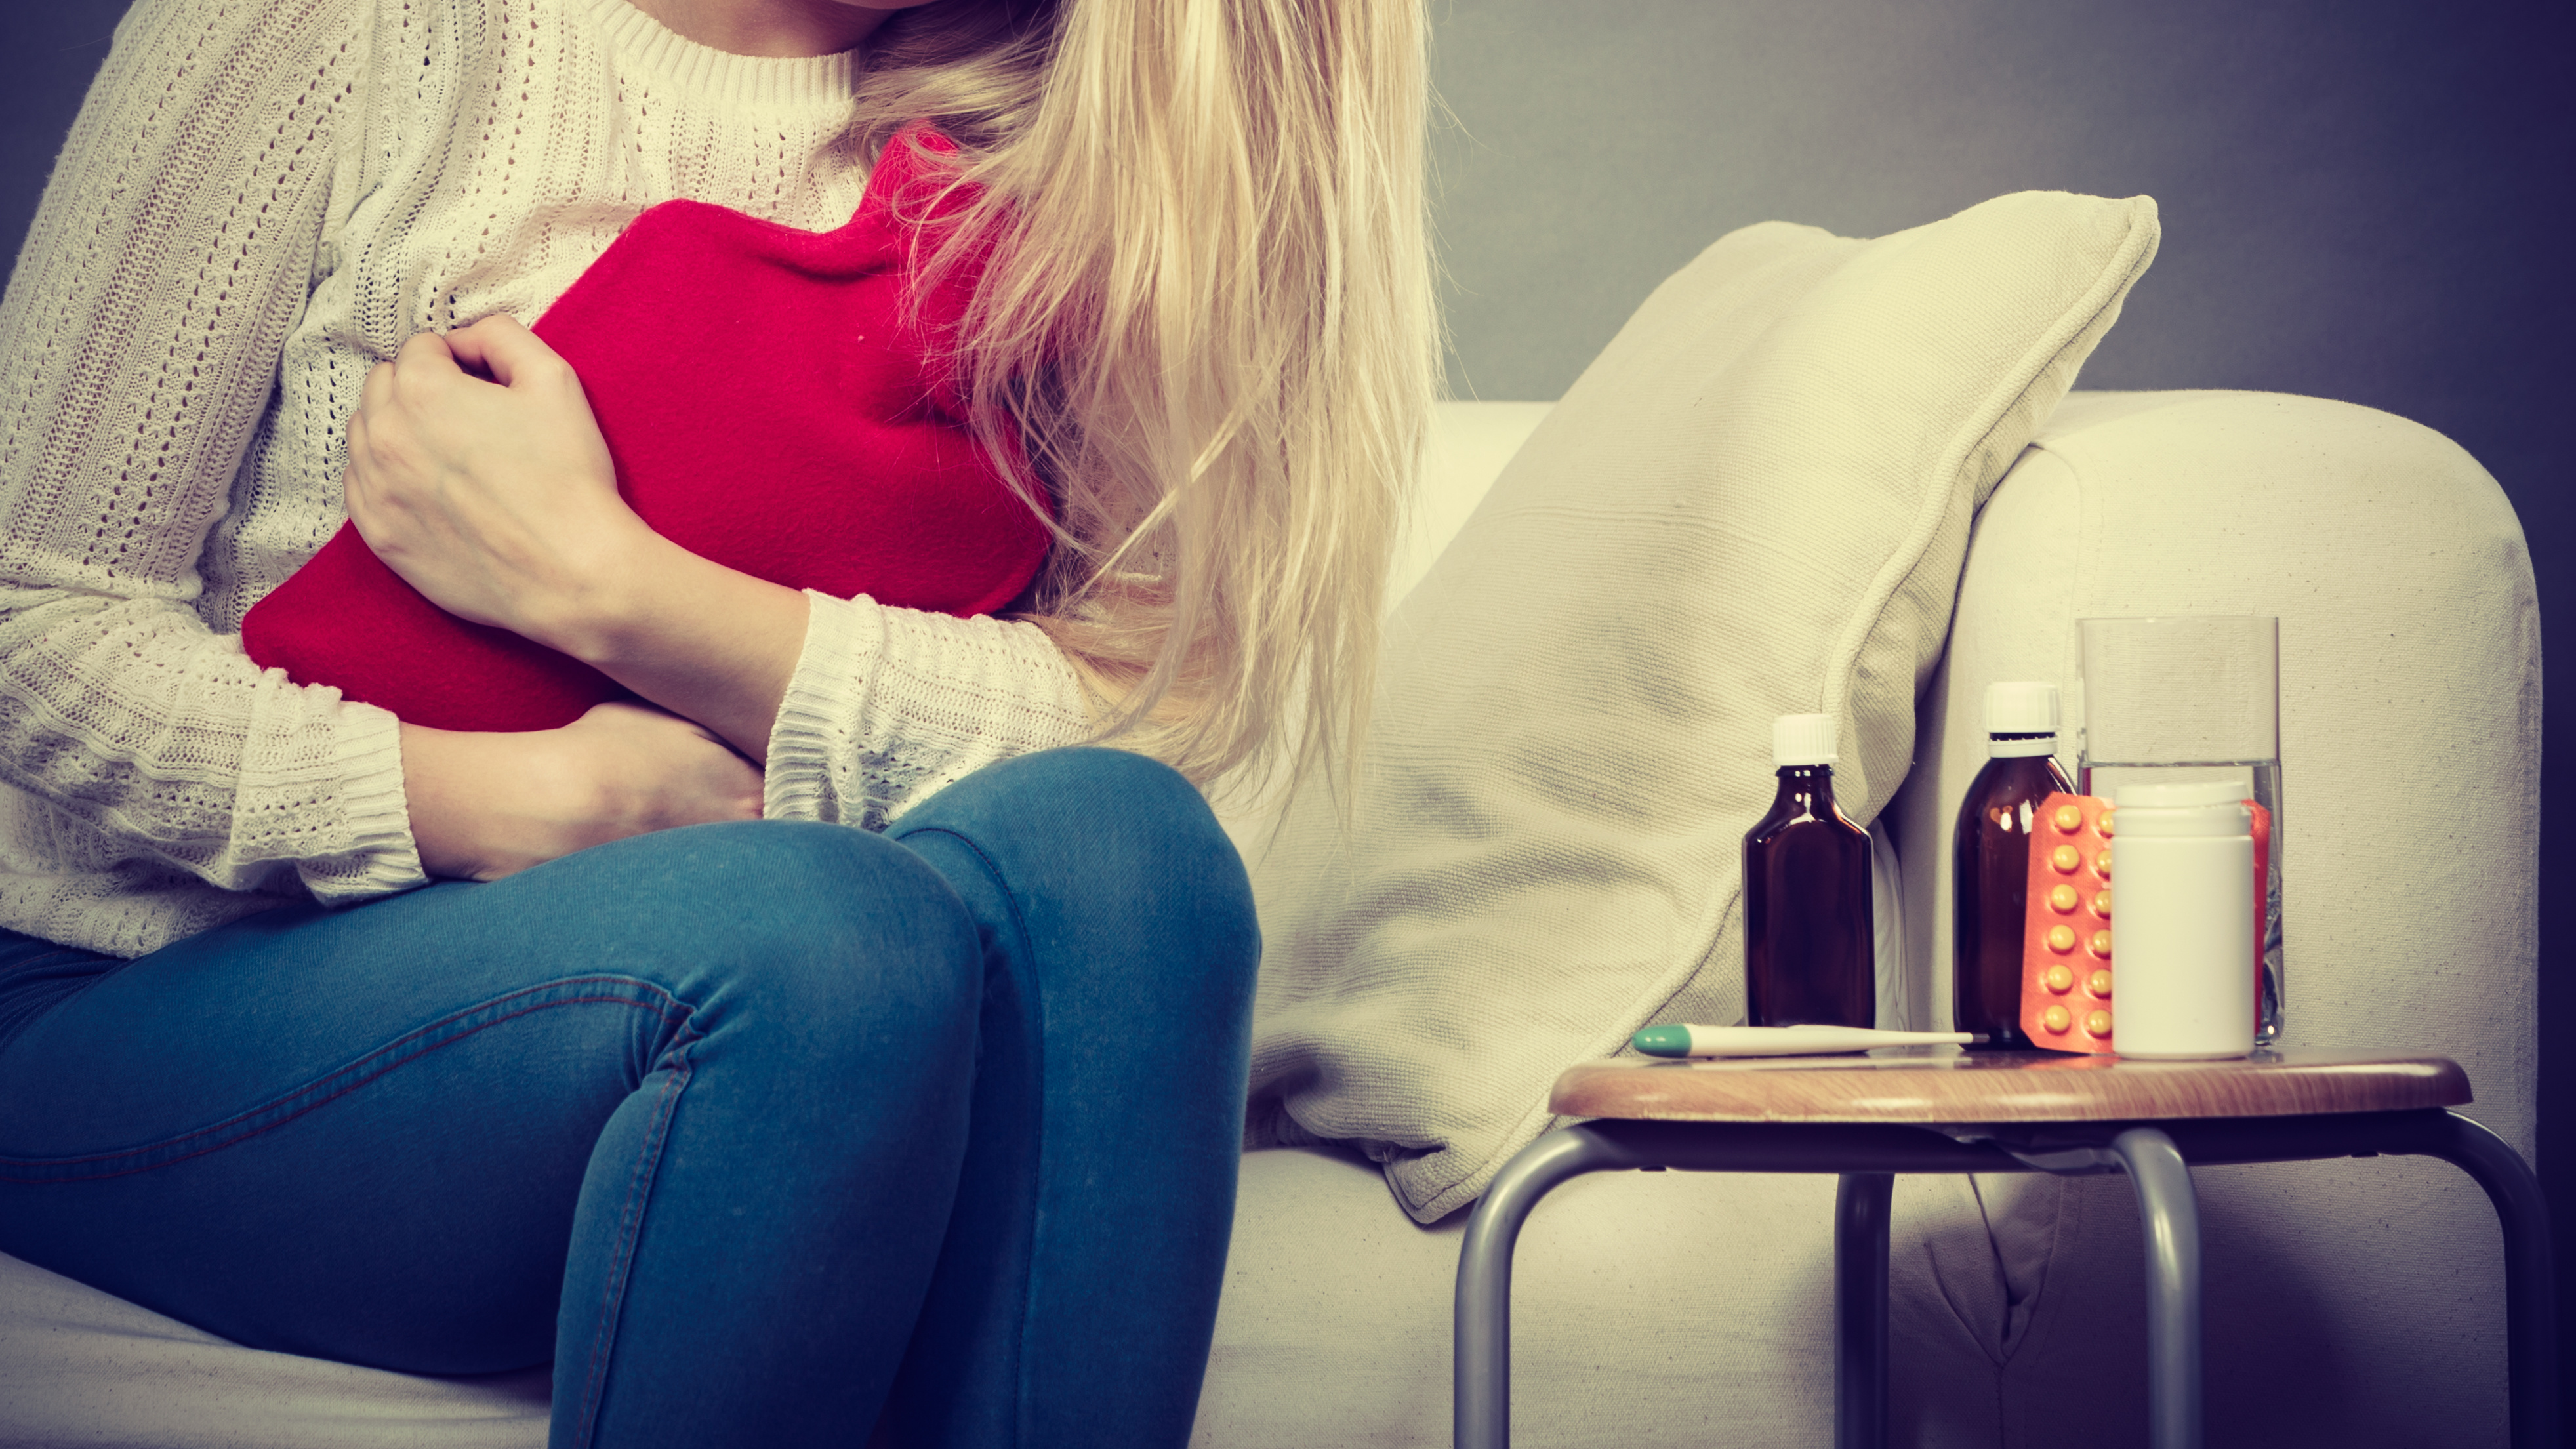 Period pain and when to seek help